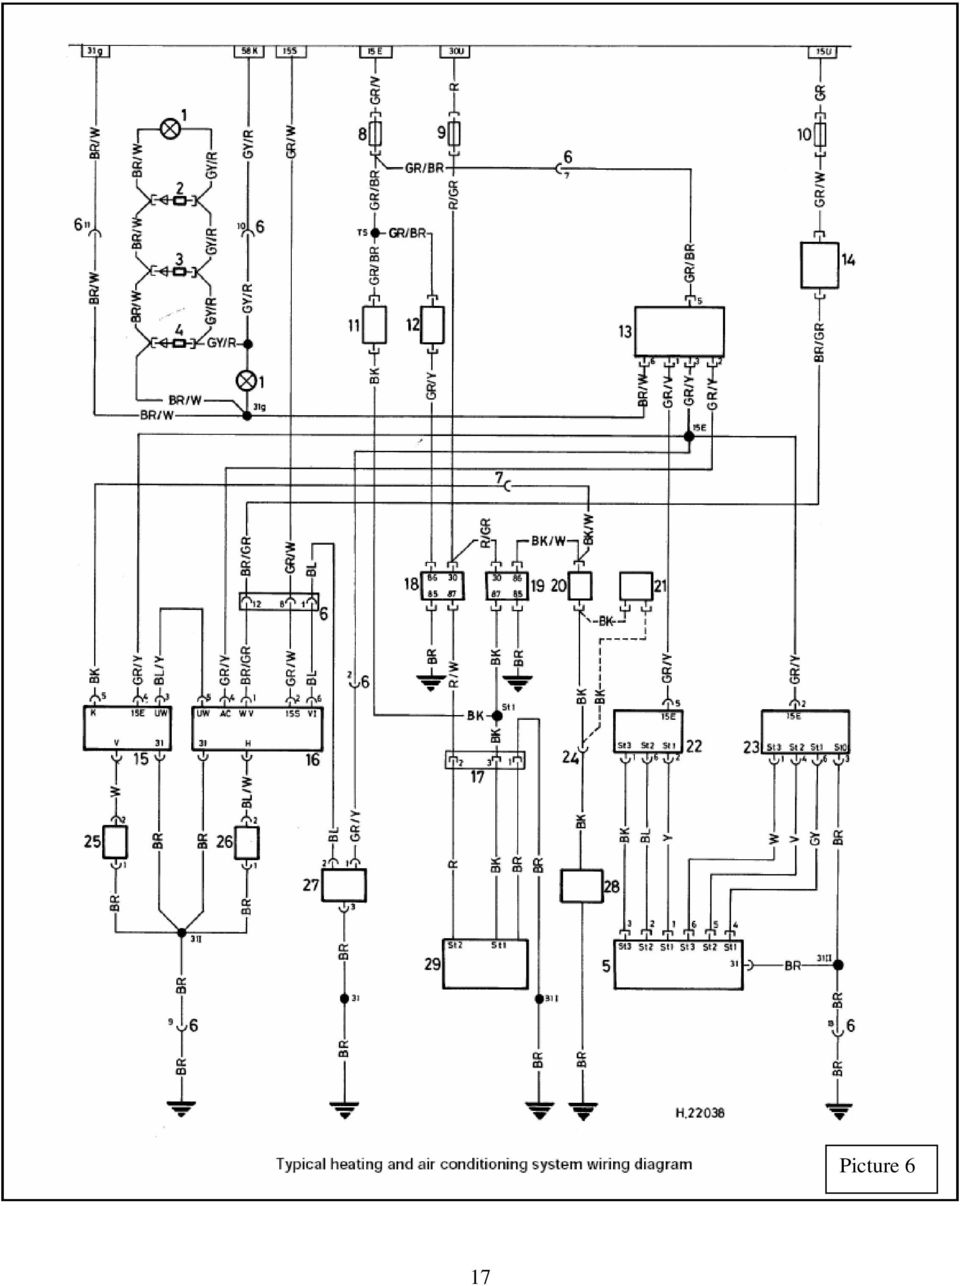 medium resolution of 18 key to air conditioning system wiring diagram picture 6 1 light for heater controls 2 light diode iii 3 light diode ii 4 light diode i 5